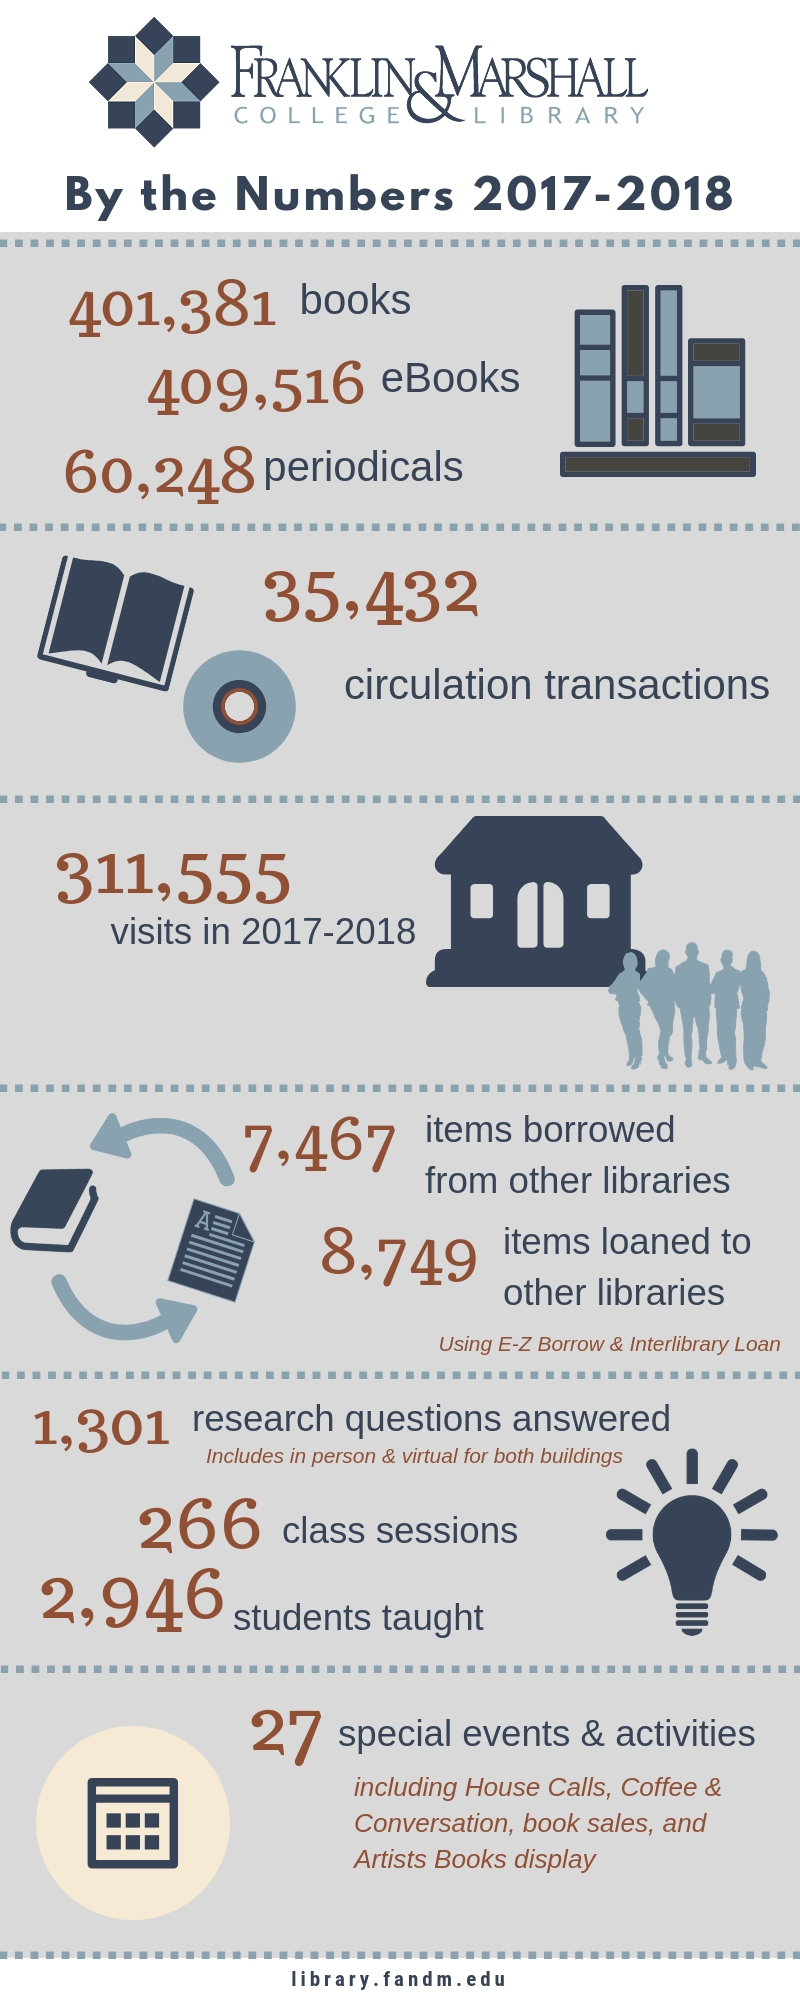 By The Numbers, 2017-2018 Infographic